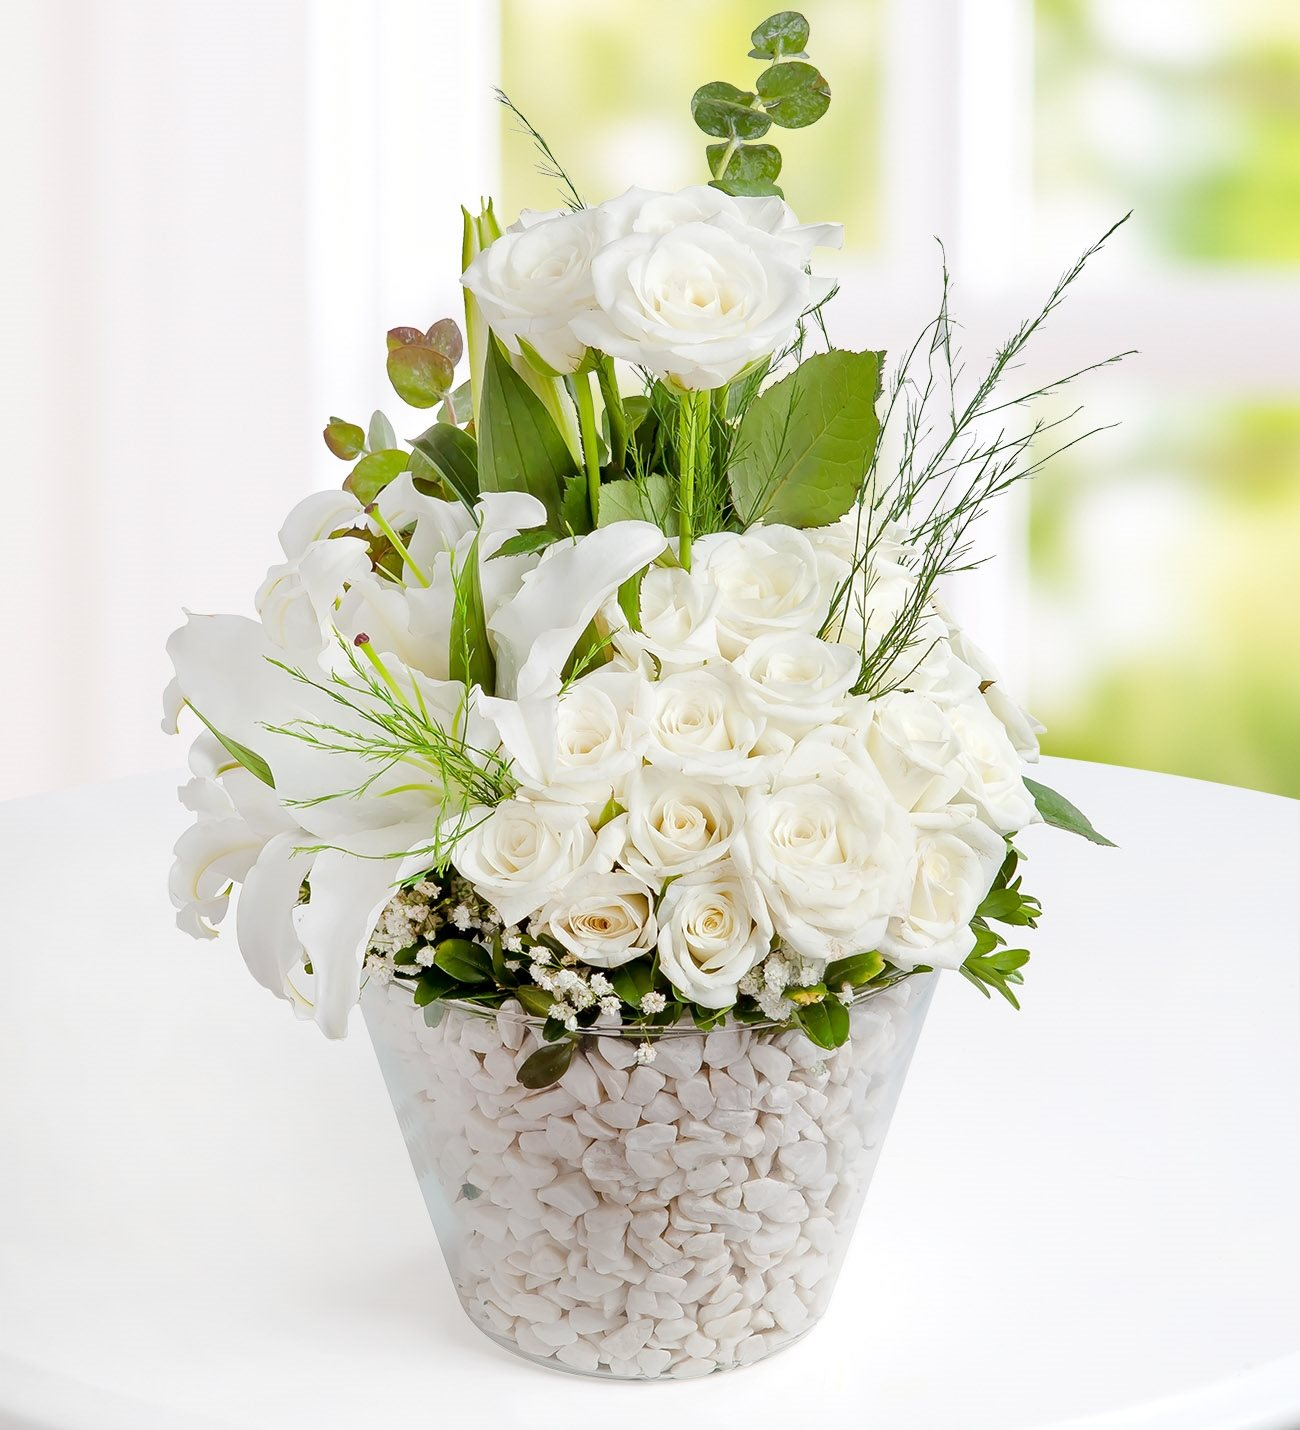 Magical beauty of flowers kc143540 magical beauty of white roses and lilies izmirmasajfo Images